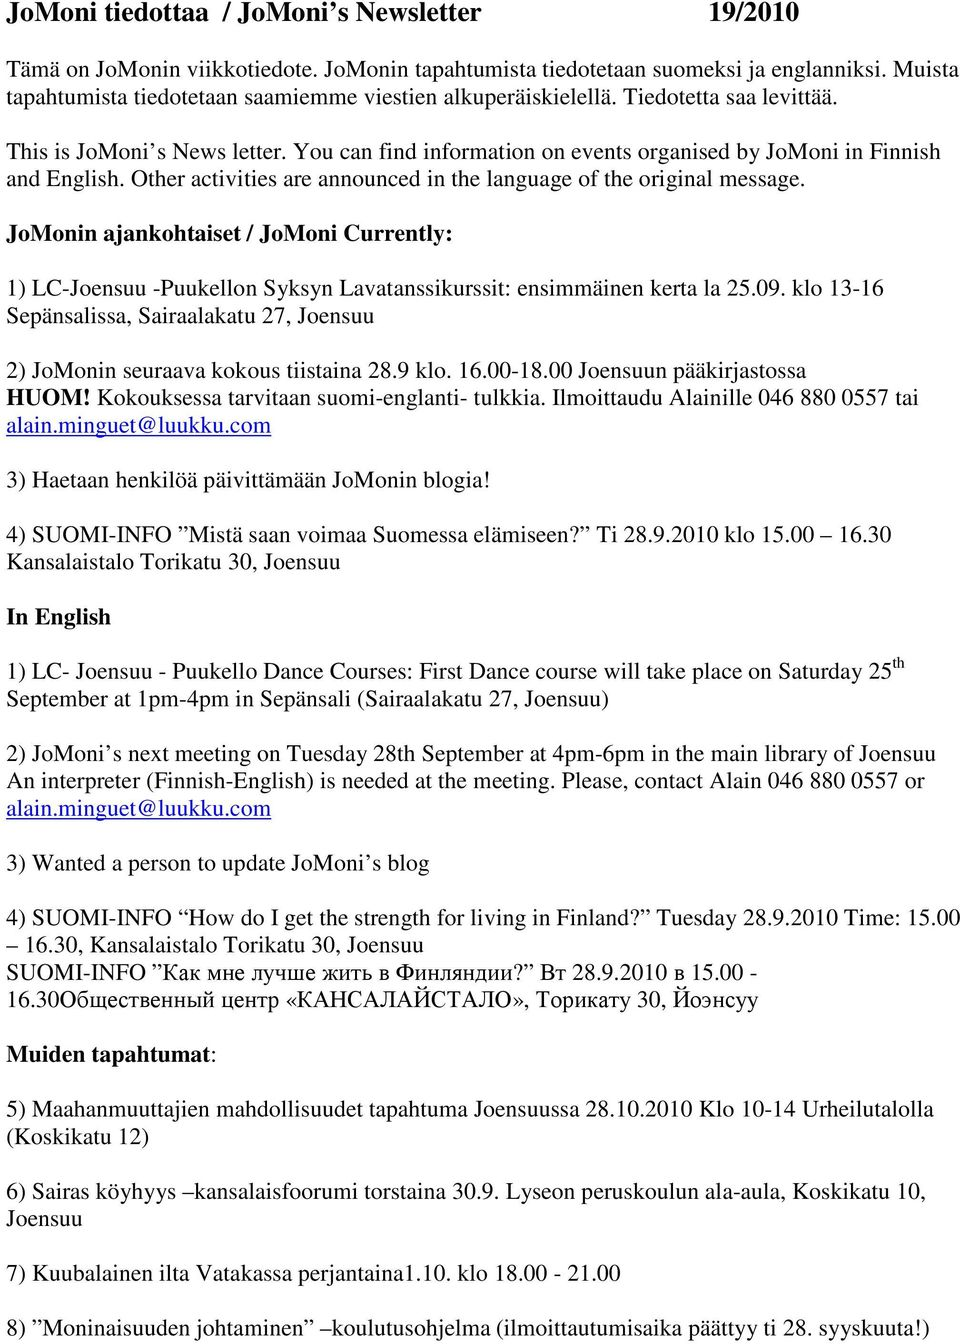 You can find information on events organised by JoMoni in Finnish and English. Other activities are announced in the language of the original message.